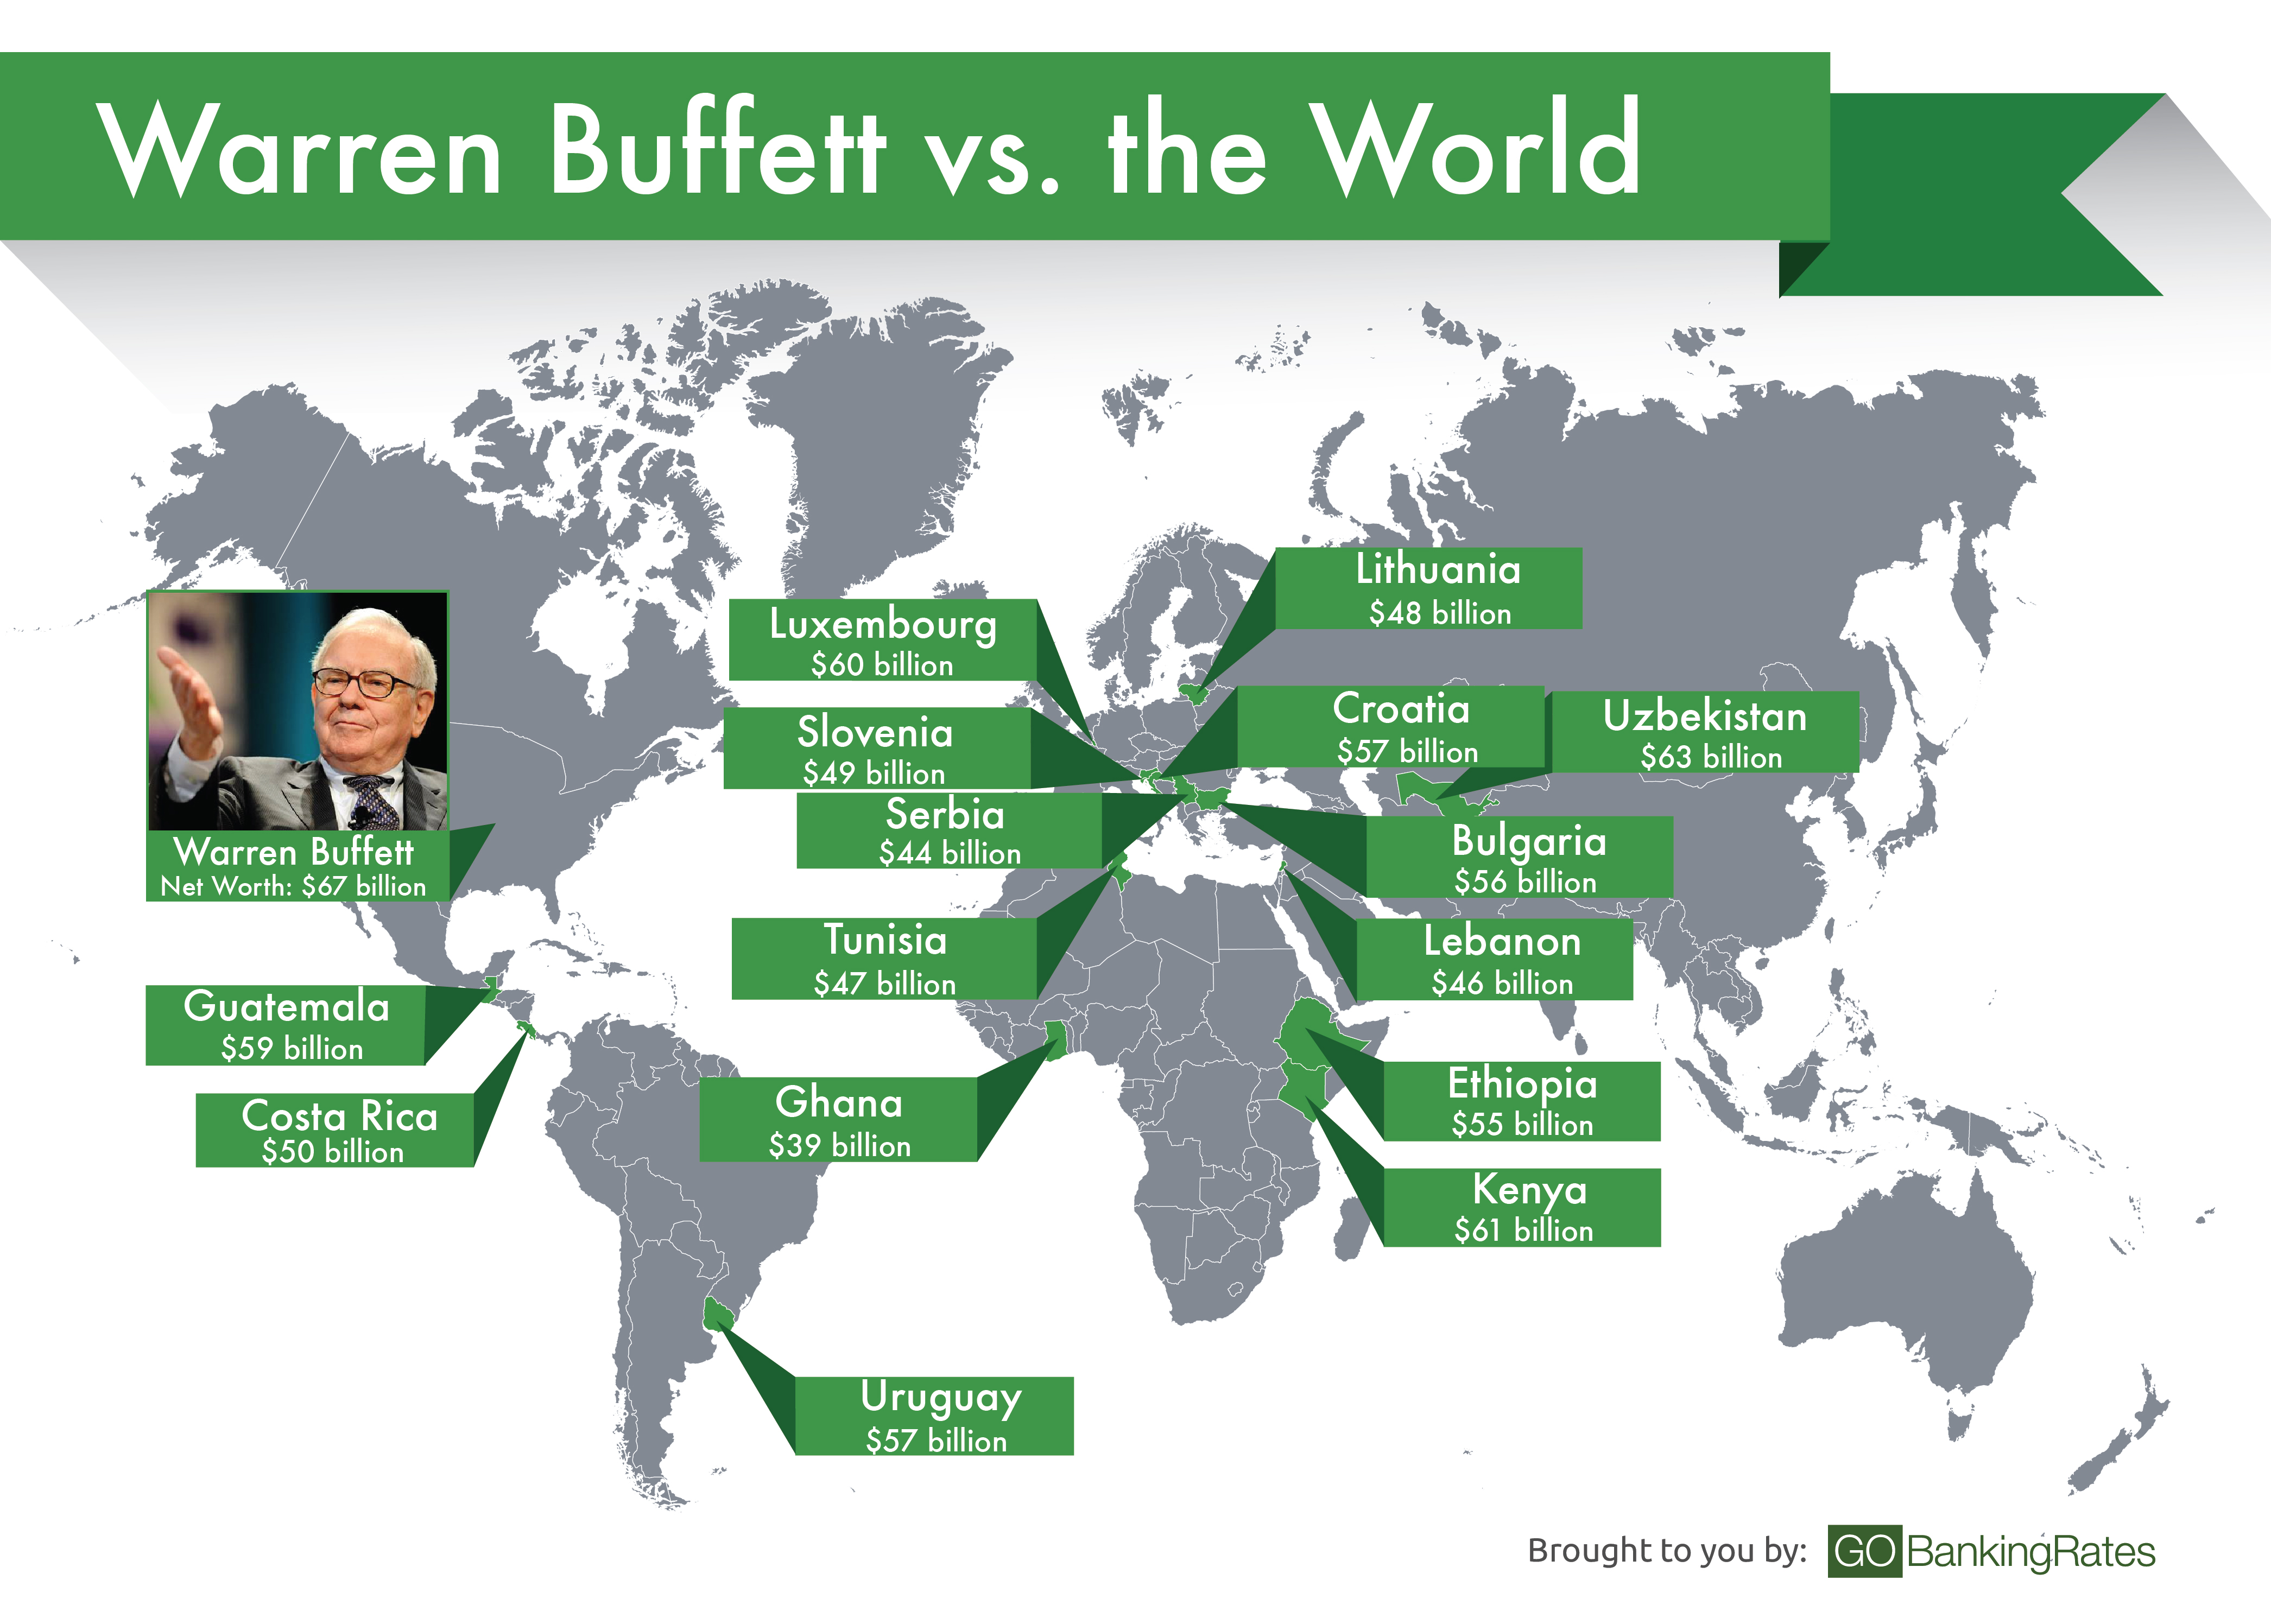 warren buffett has a bigger gdp than these 15 countries